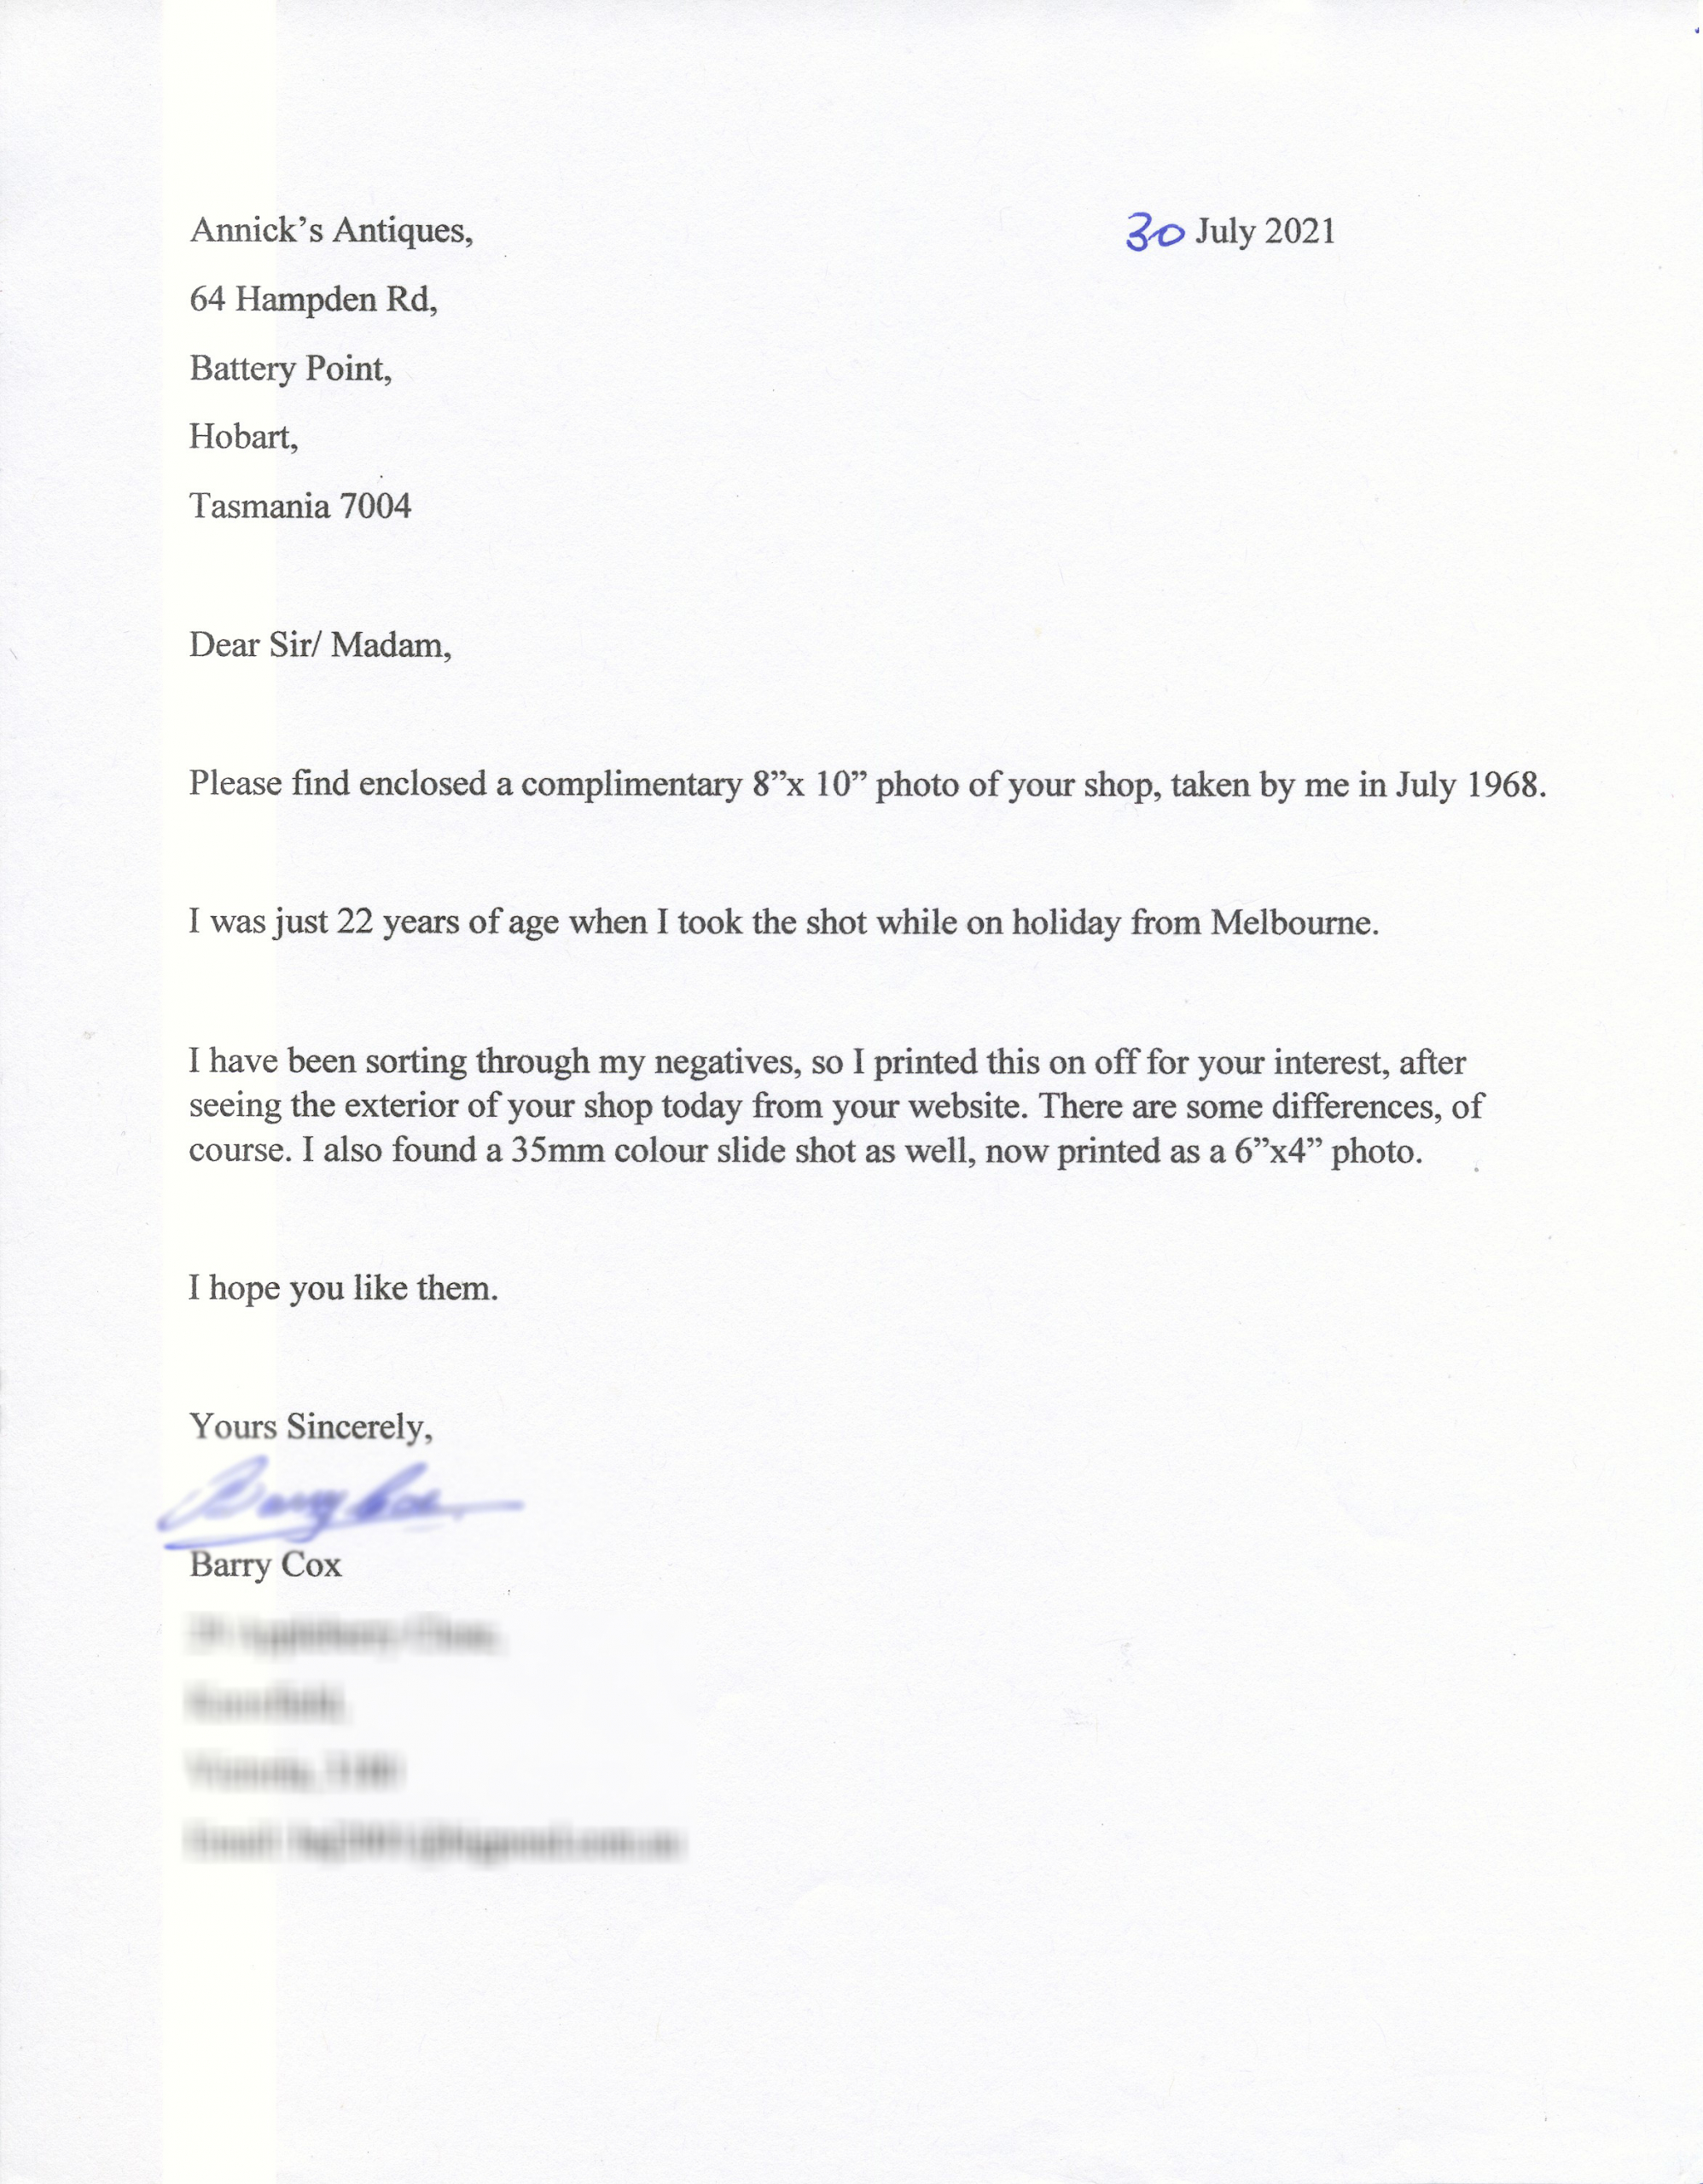 Barry Cox Letter